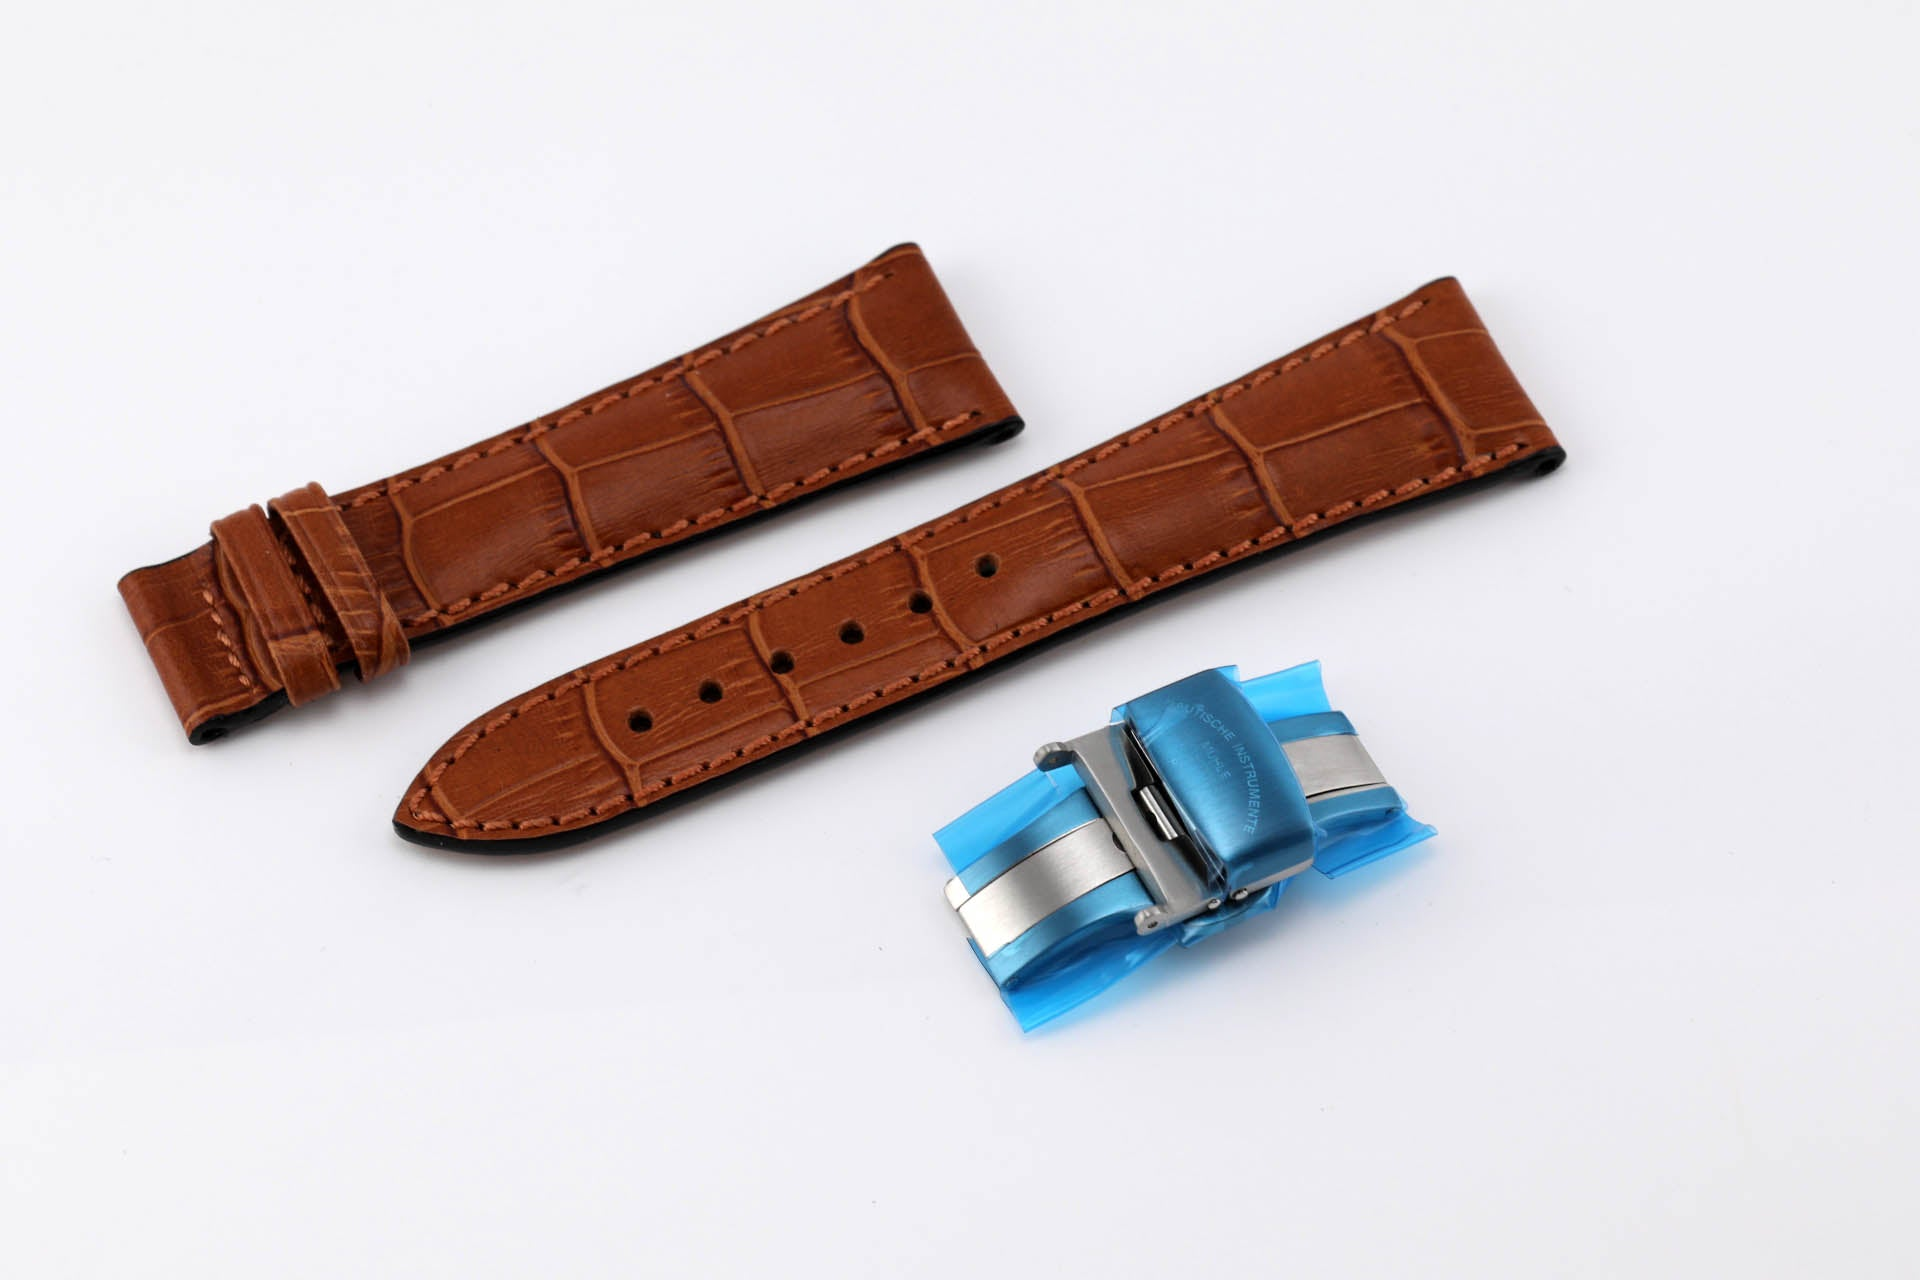 Mühle Glashütte Calf Strap with Alligator Print and Double Folding Buckle for M1-33-82-LB